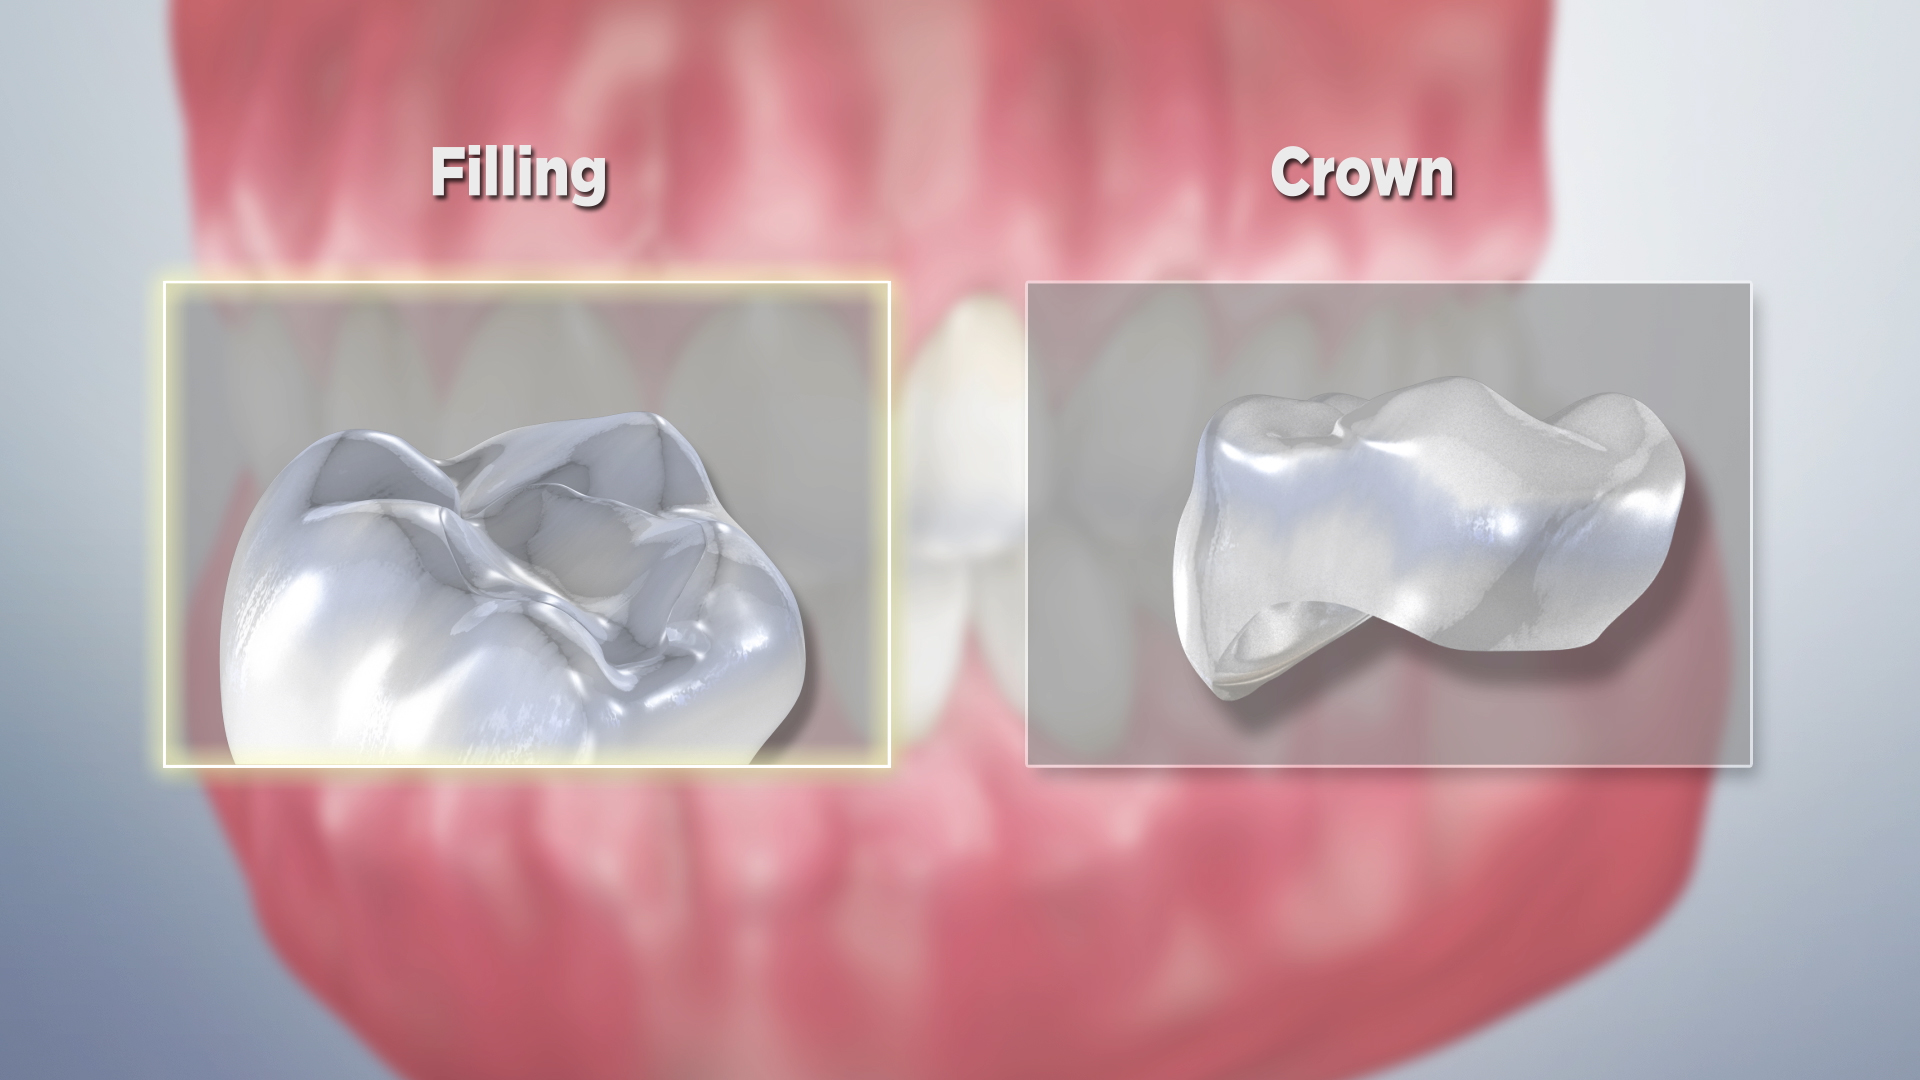 Thumbnail for a video on Filling Versus Crown (Impression)